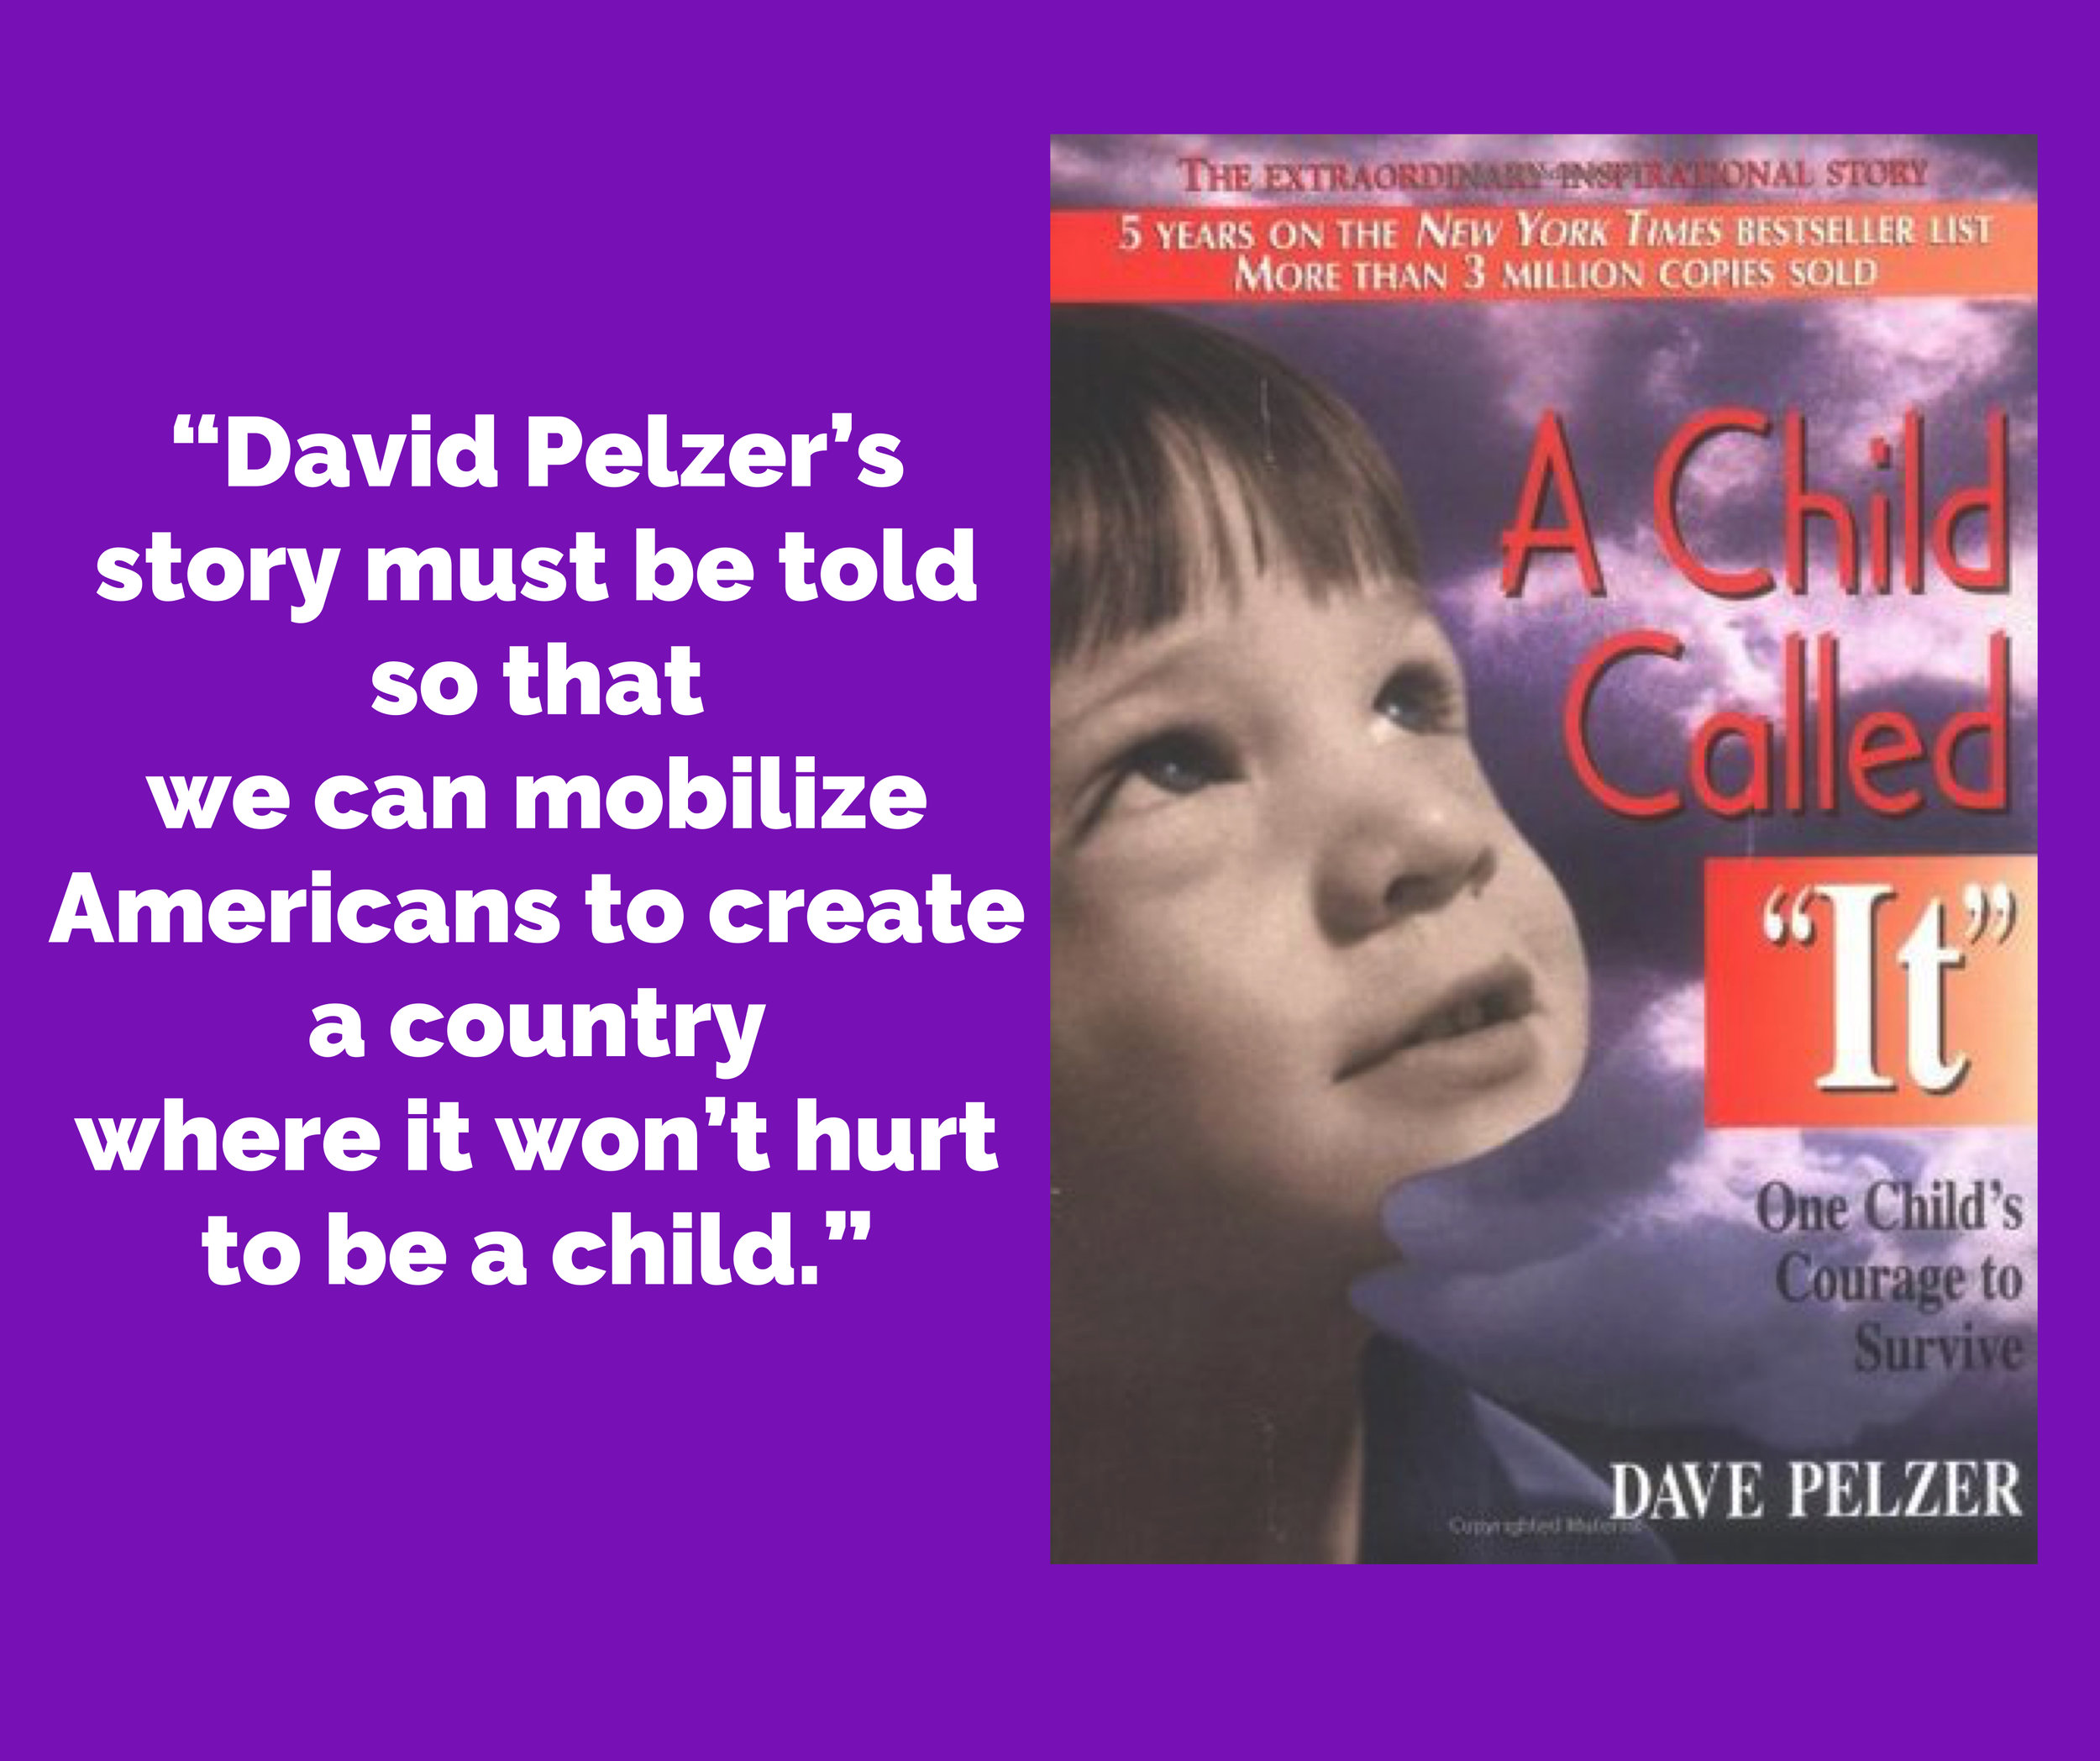 A Child Called It - Personal Biography by Dave Pelzer